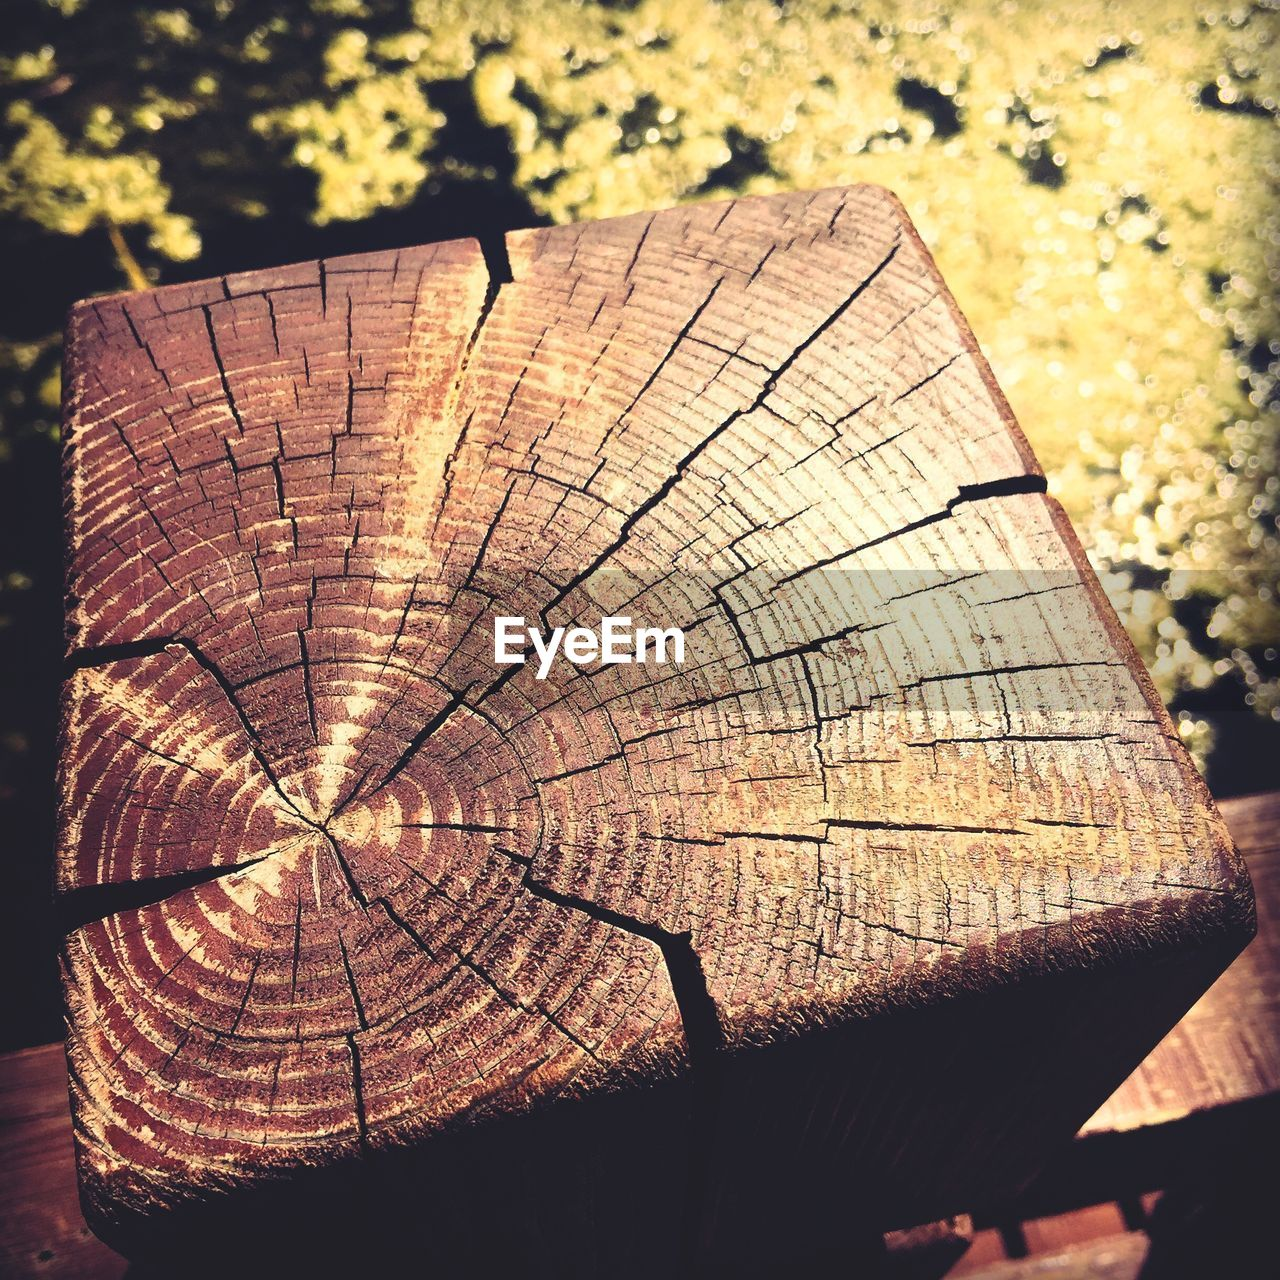 tree ring, deforestation, log, lumber industry, tree stump, timber, textured, wood - material, close-up, cross section, pattern, environmental issues, outdoors, day, nature, tree, no people, industry, forestry industry